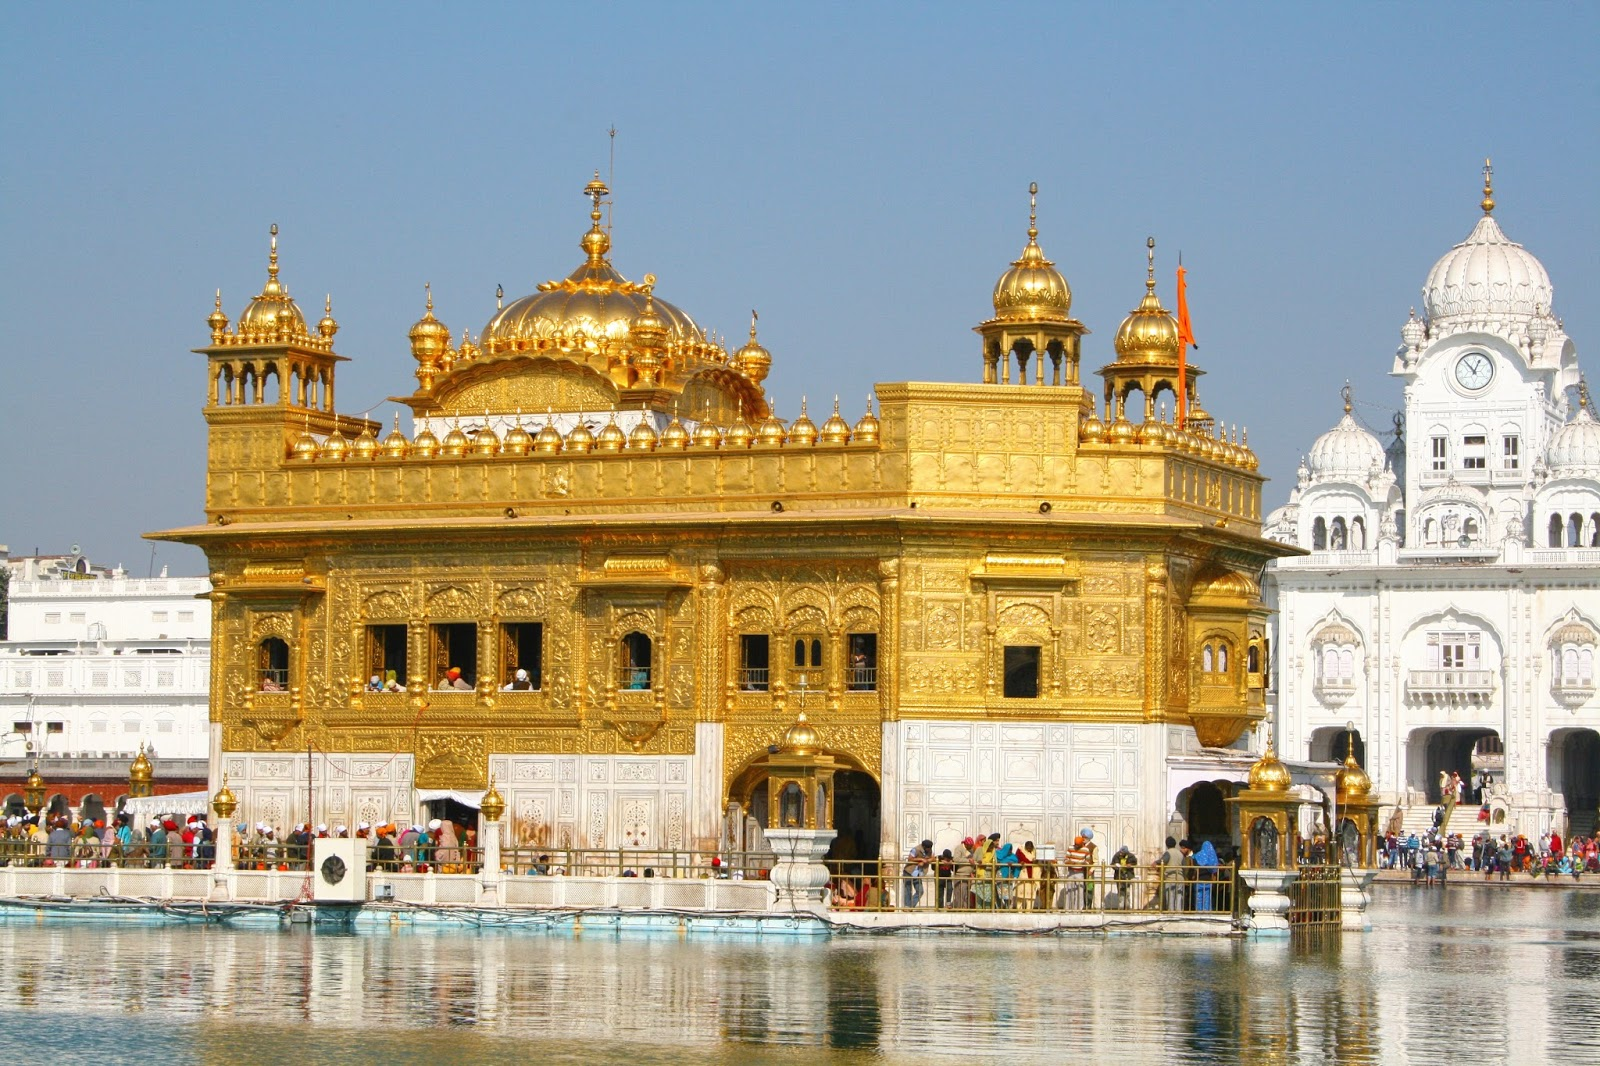 nishan sahib with The Golden Temple Amritsar Also Known on 16664408 furthermore Gurdwara sri bangla sahib also Schedule as well Introduction To Sikhismkhalsa Saint Soldier also The Golden Temple Amritsar Also Known.